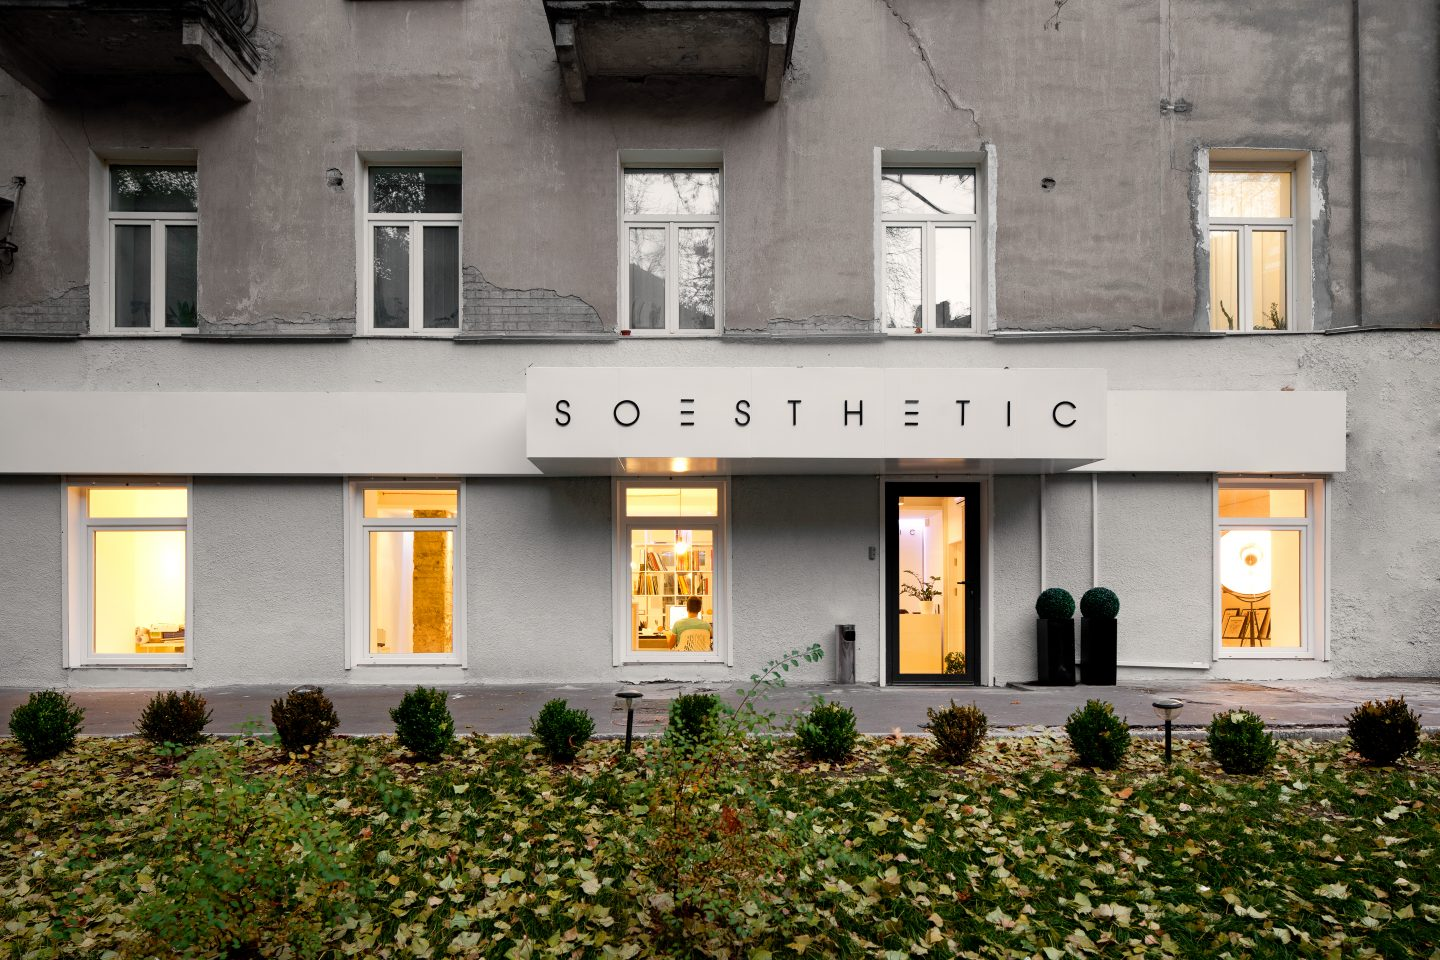 SOESTHETIC GROUP OFFICE 11-11-16 067 ps